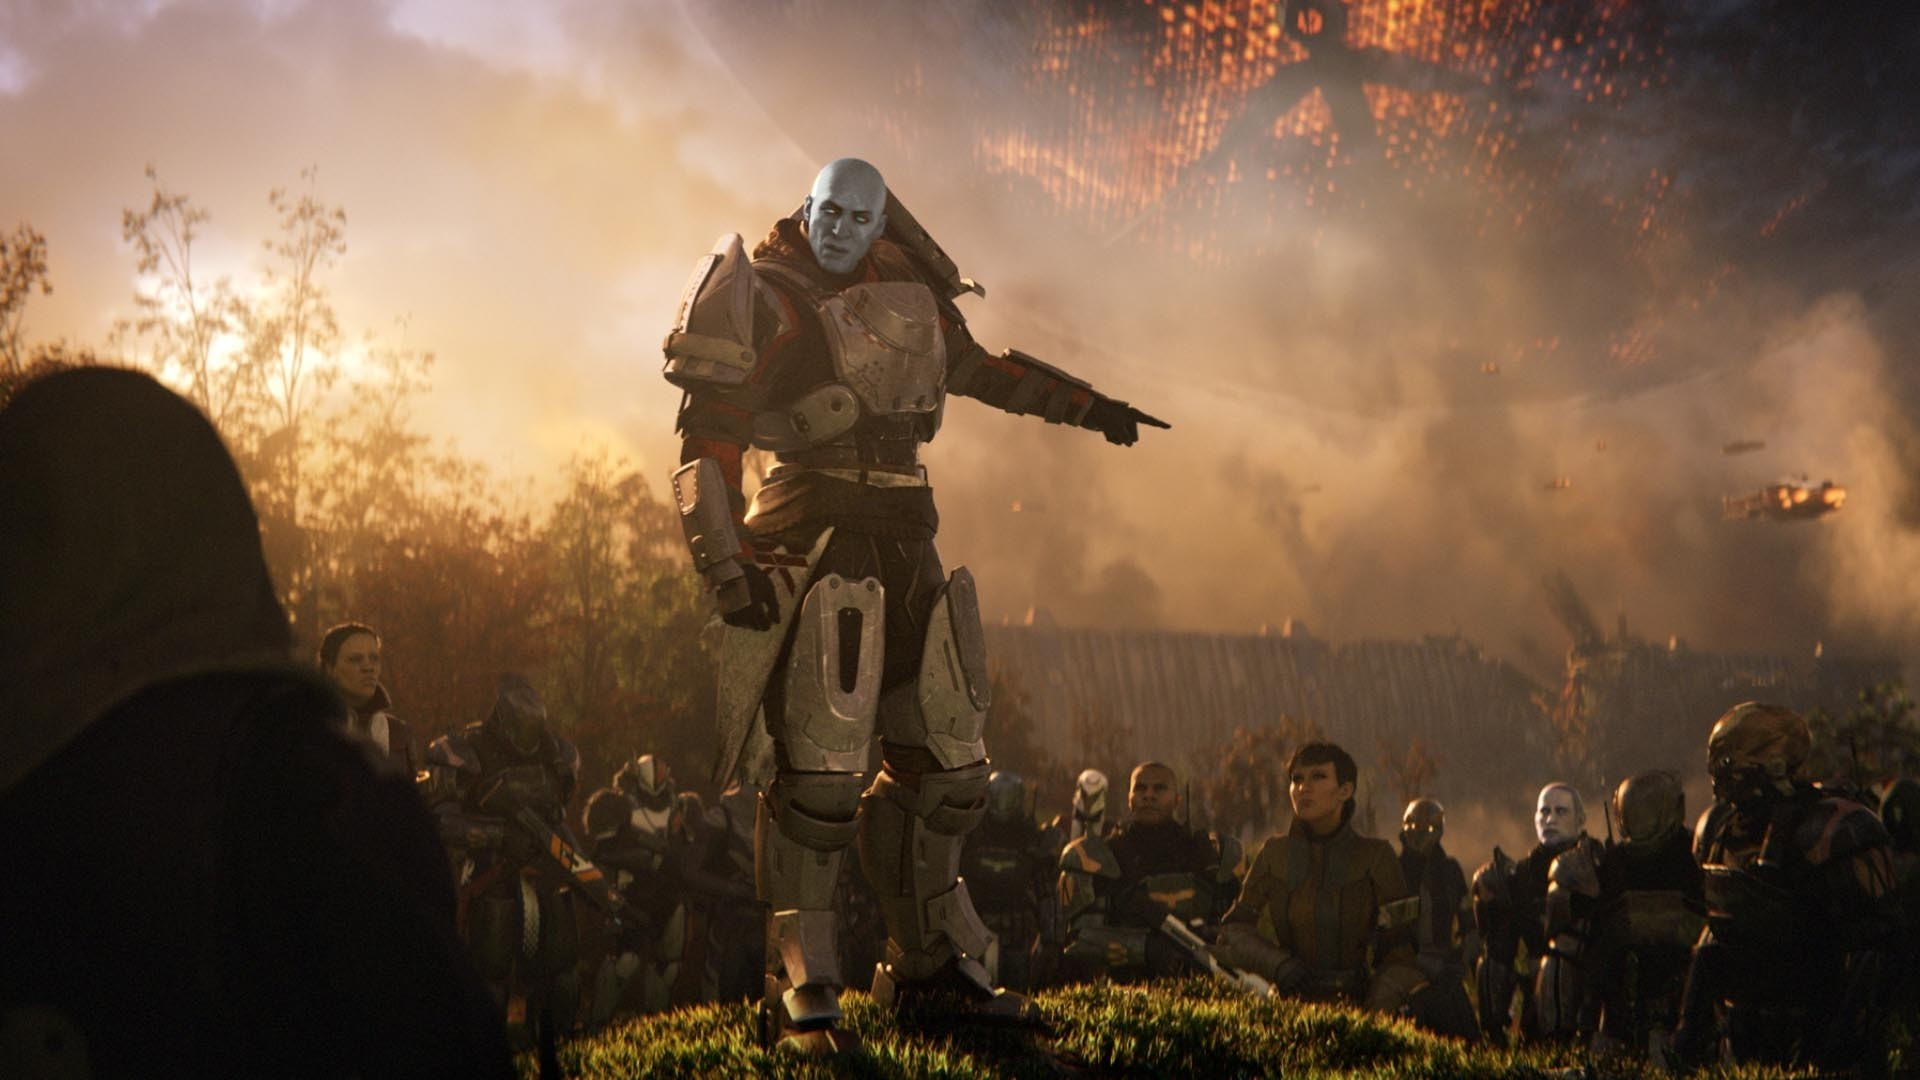 Let me know what you think about the images below: Also take a look at the  Destiny 2 trailer breakdown.